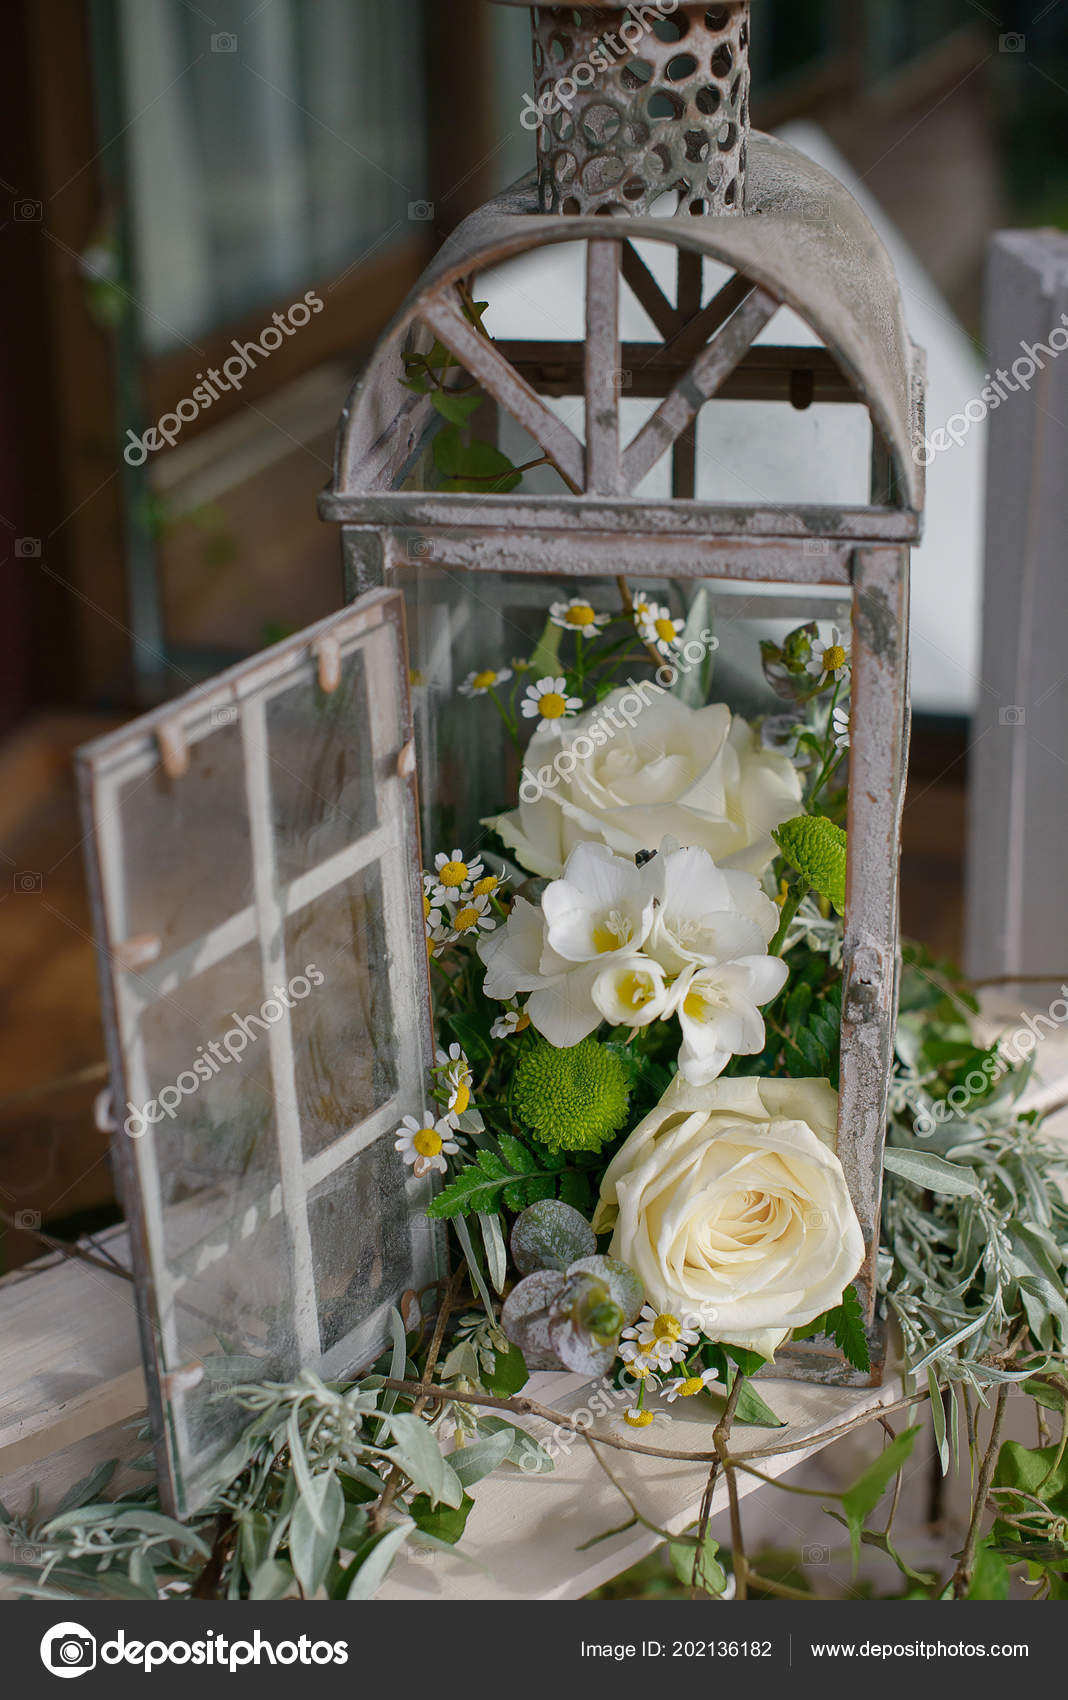 Rustic shabby chic wedding ideas | Old Vintage Candle Cage Lantern  Repurposed Rustic Shabby Chic Wedding — Stock Photo © AnaIacobPhotography  #202136182